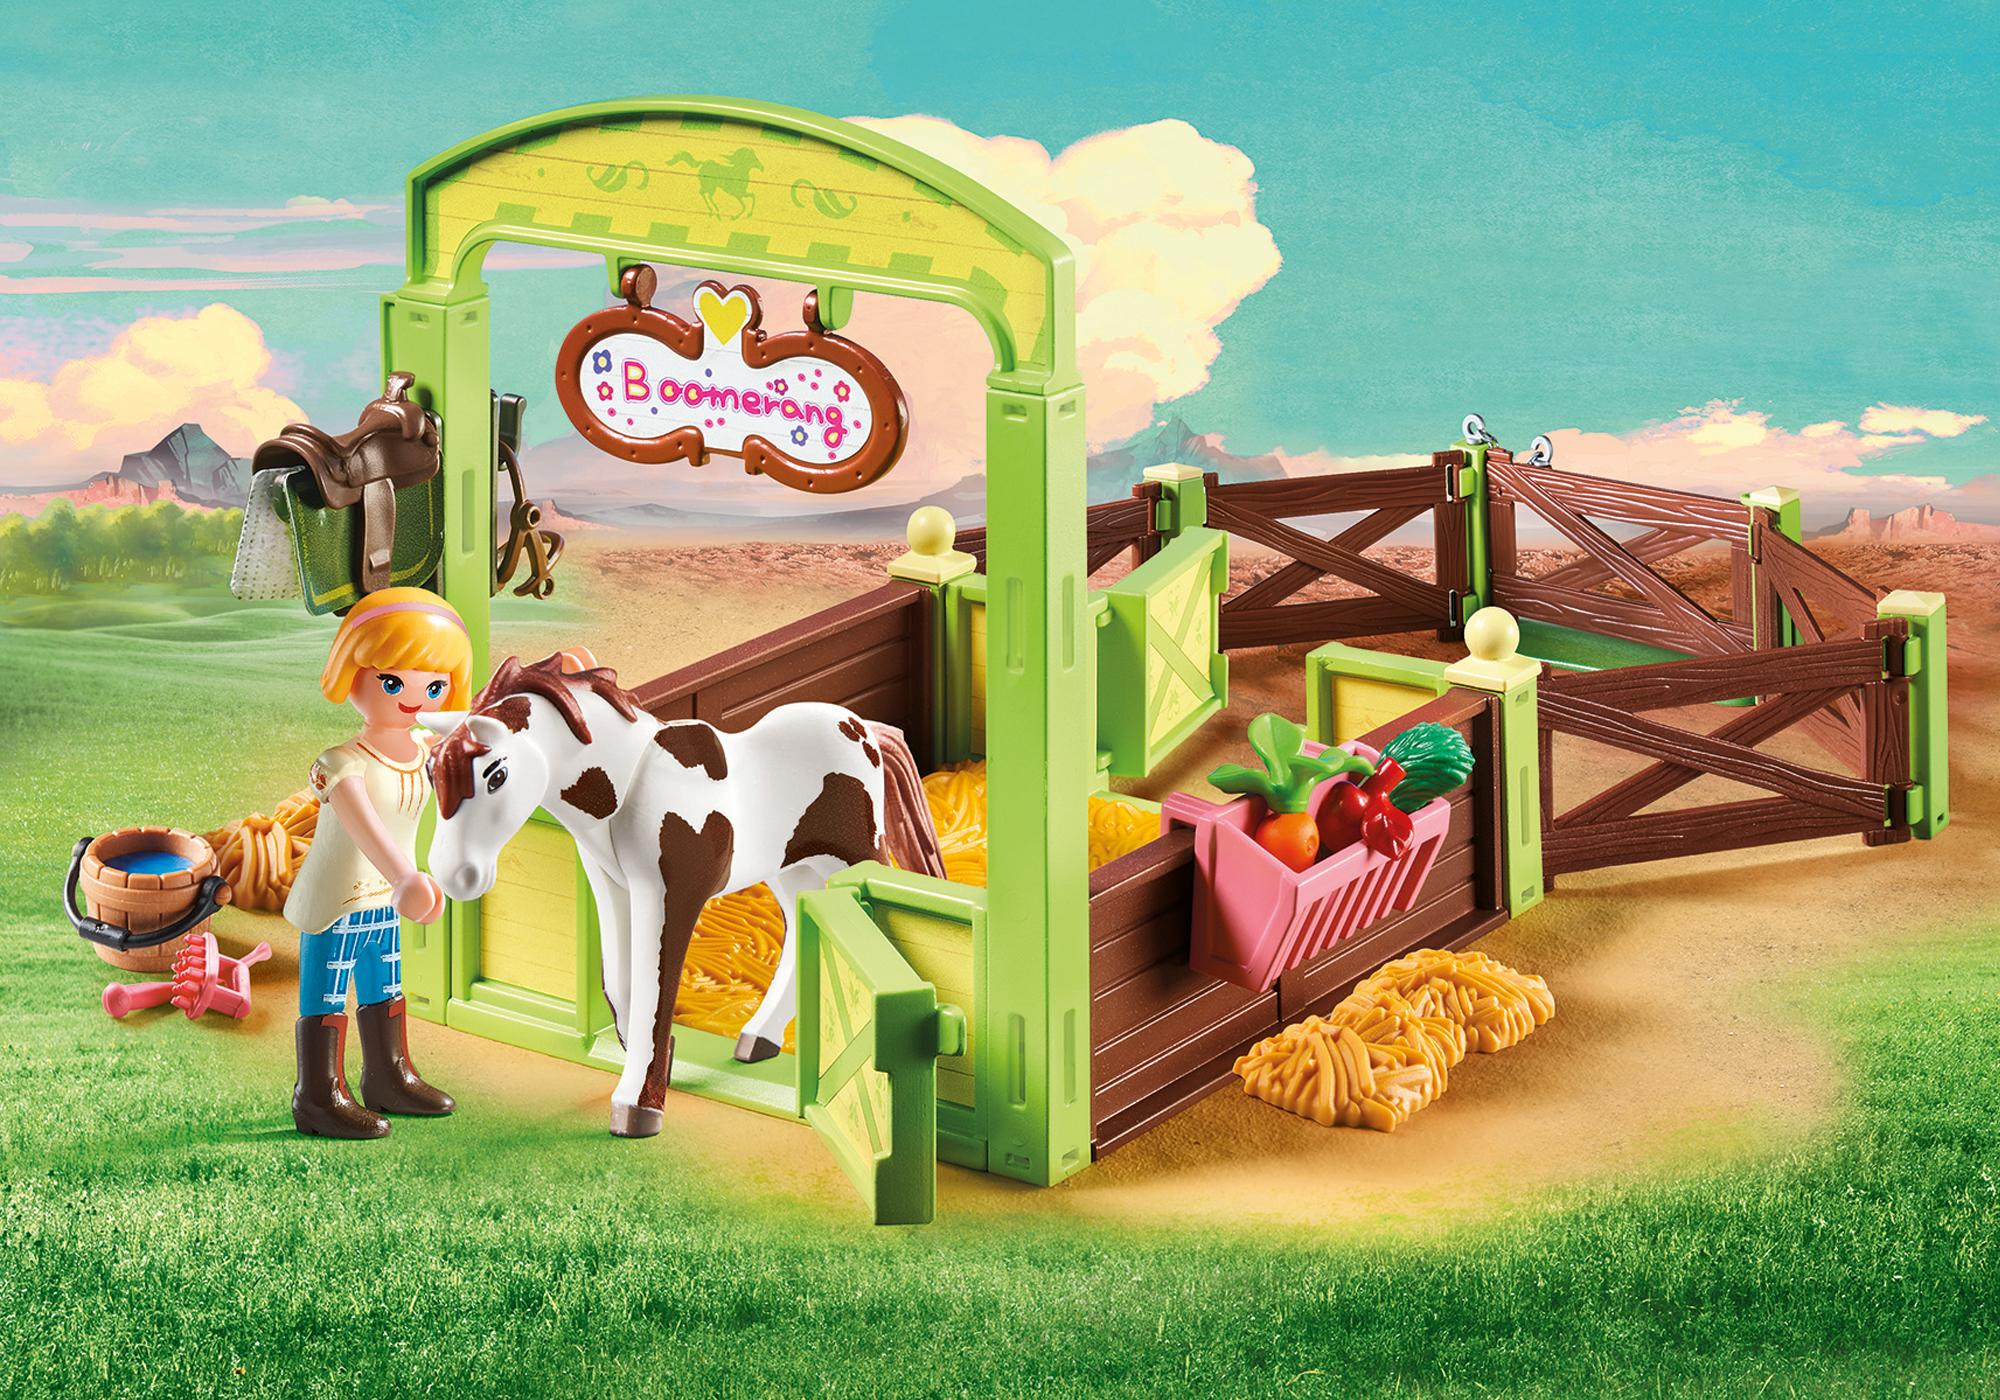 9480_product_detail/Abigail & Boomerang with Horse Stall